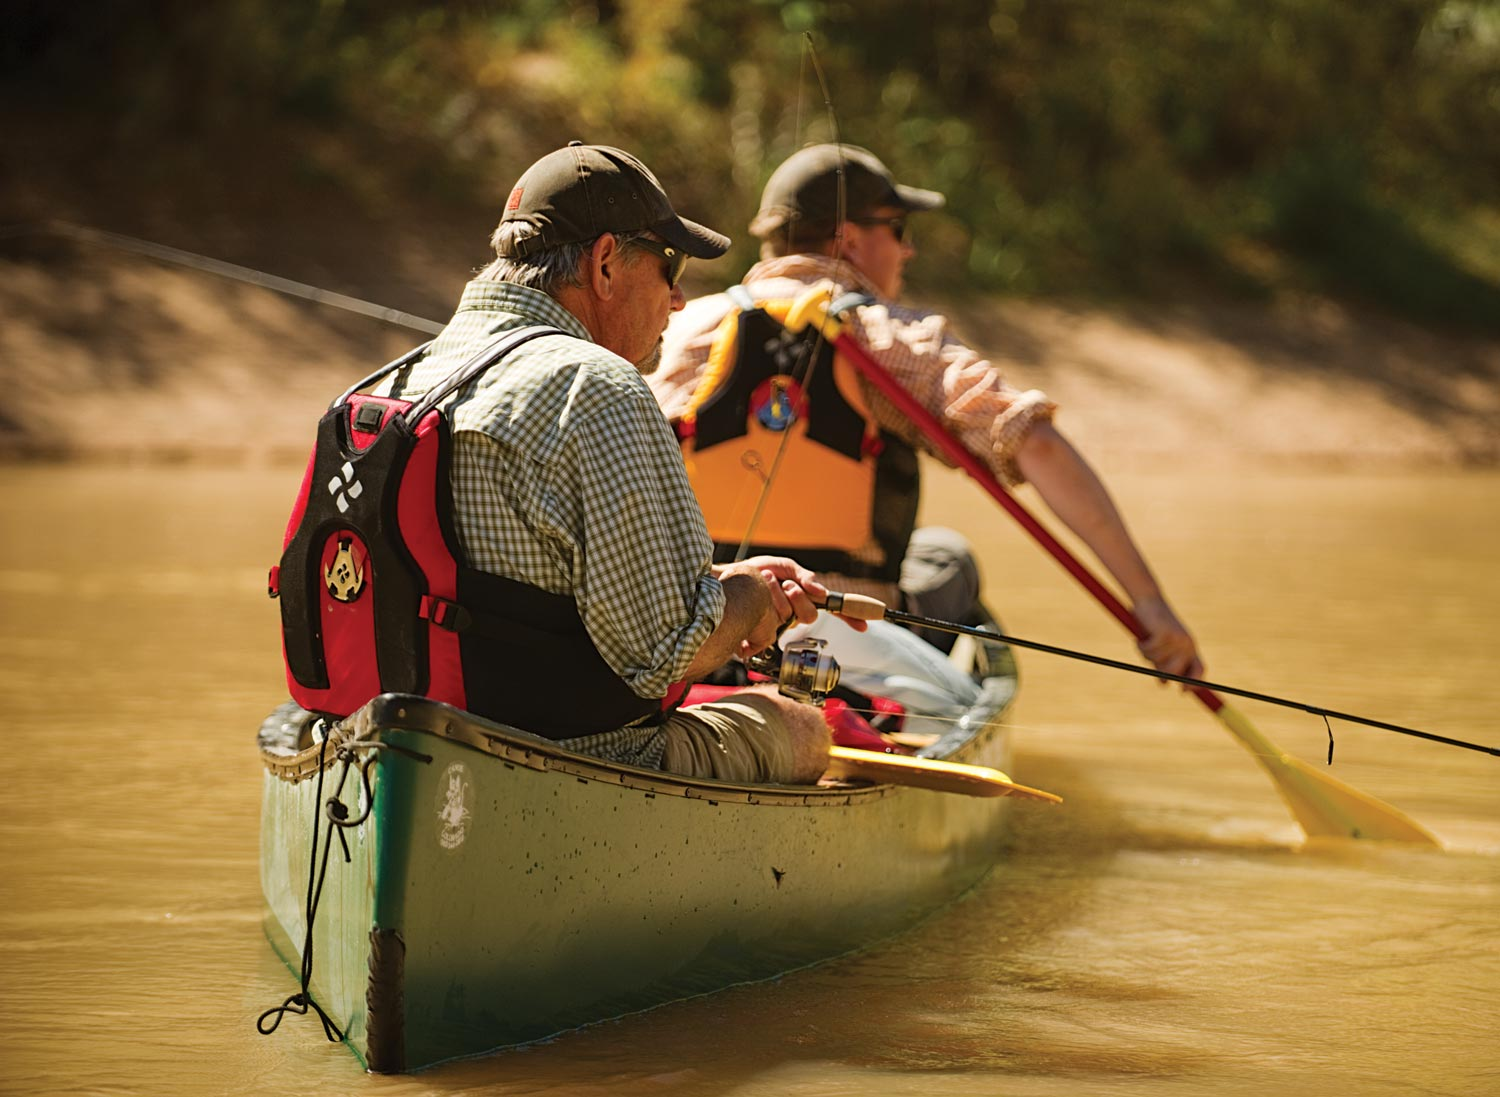 canoe guide, canoe tips, canoe paddling tips, canoe trip